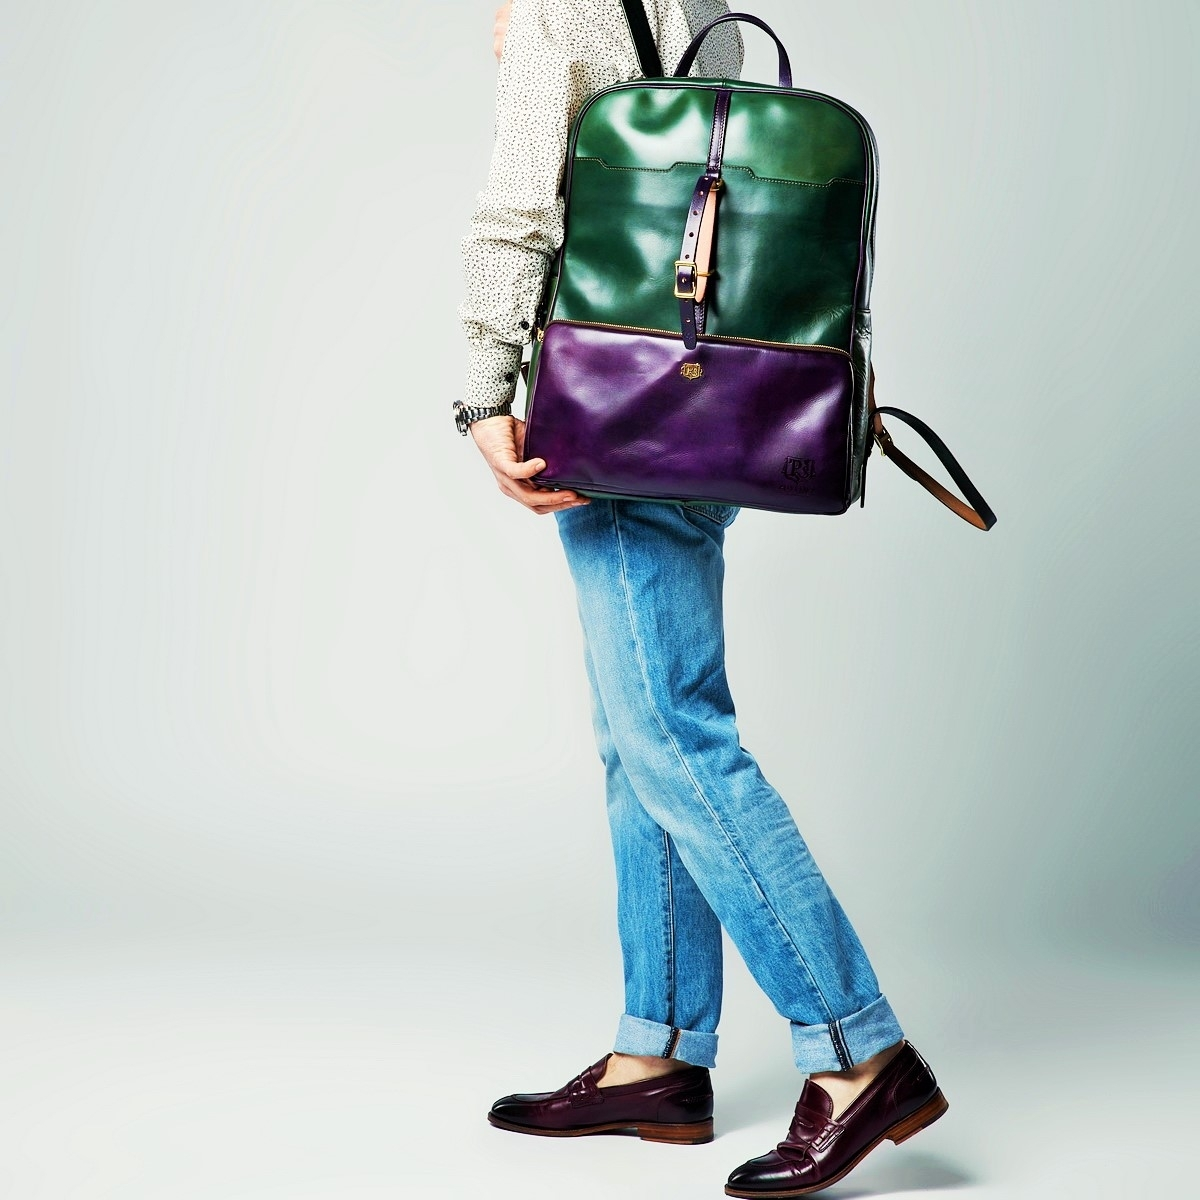 Backpack GRAN TURISMO 17'' violet ink & grassy green